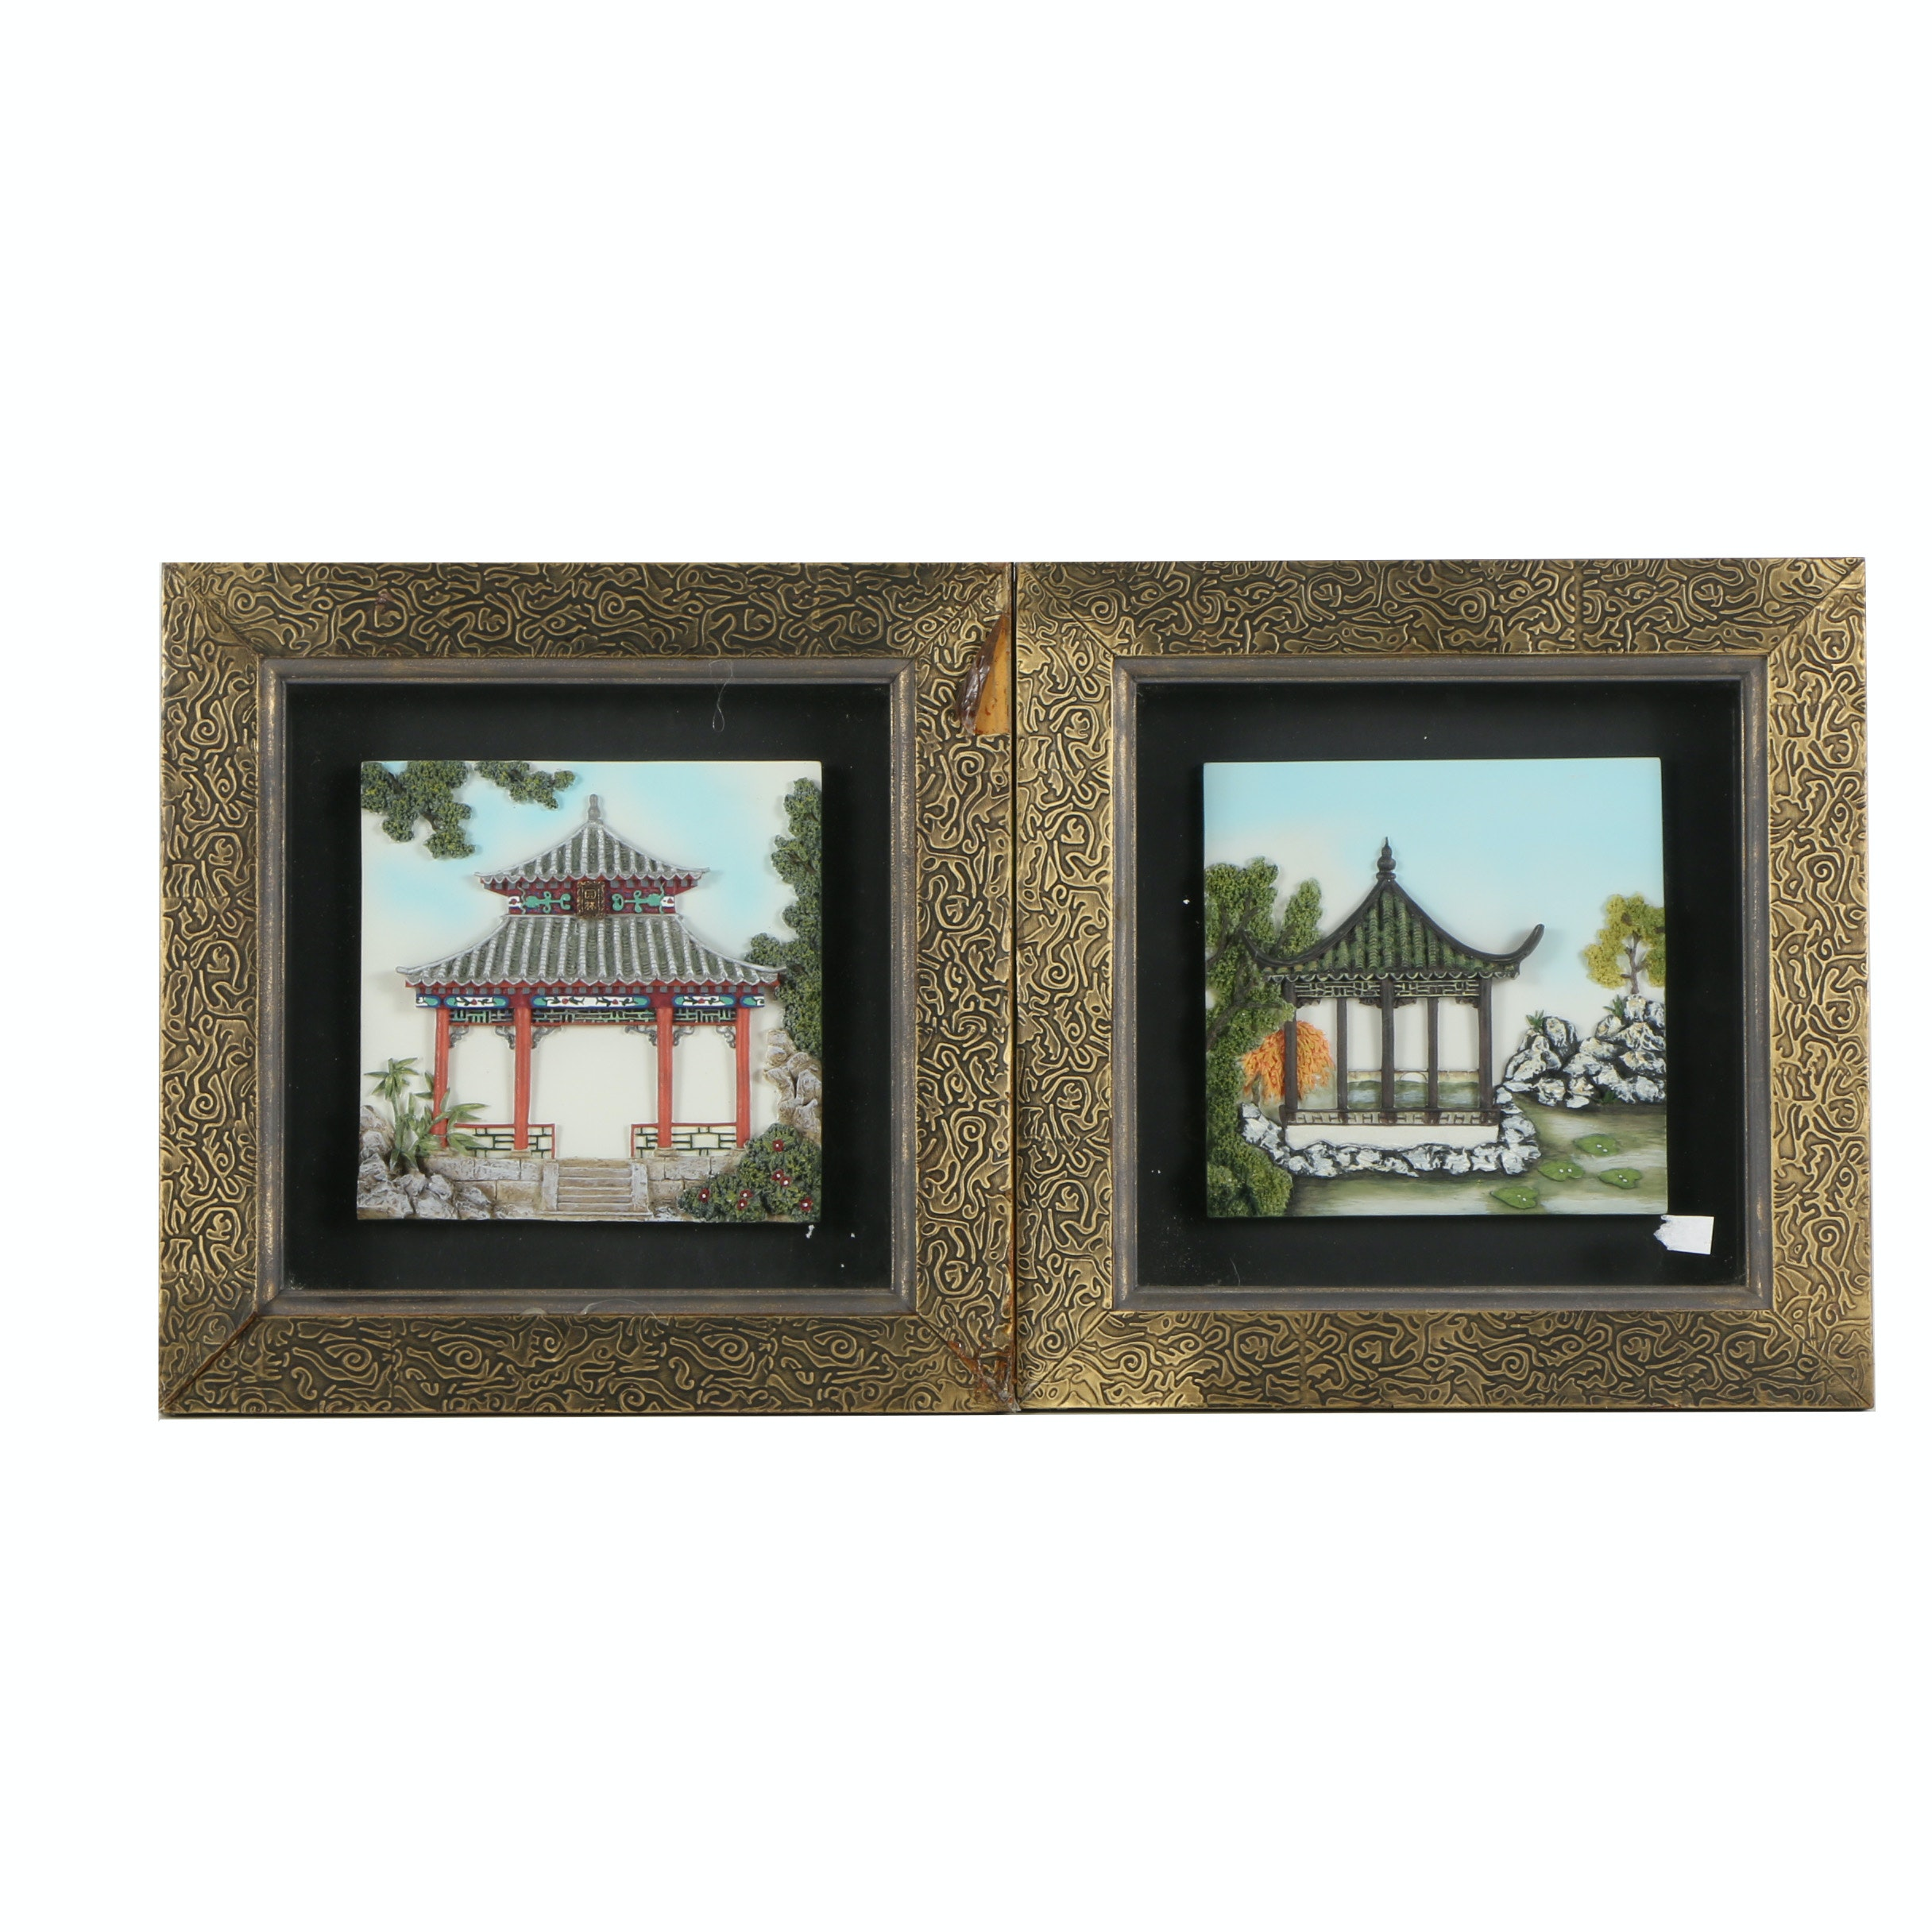 Hand Painted Resin Relief Sculptures of East Asian Architecture